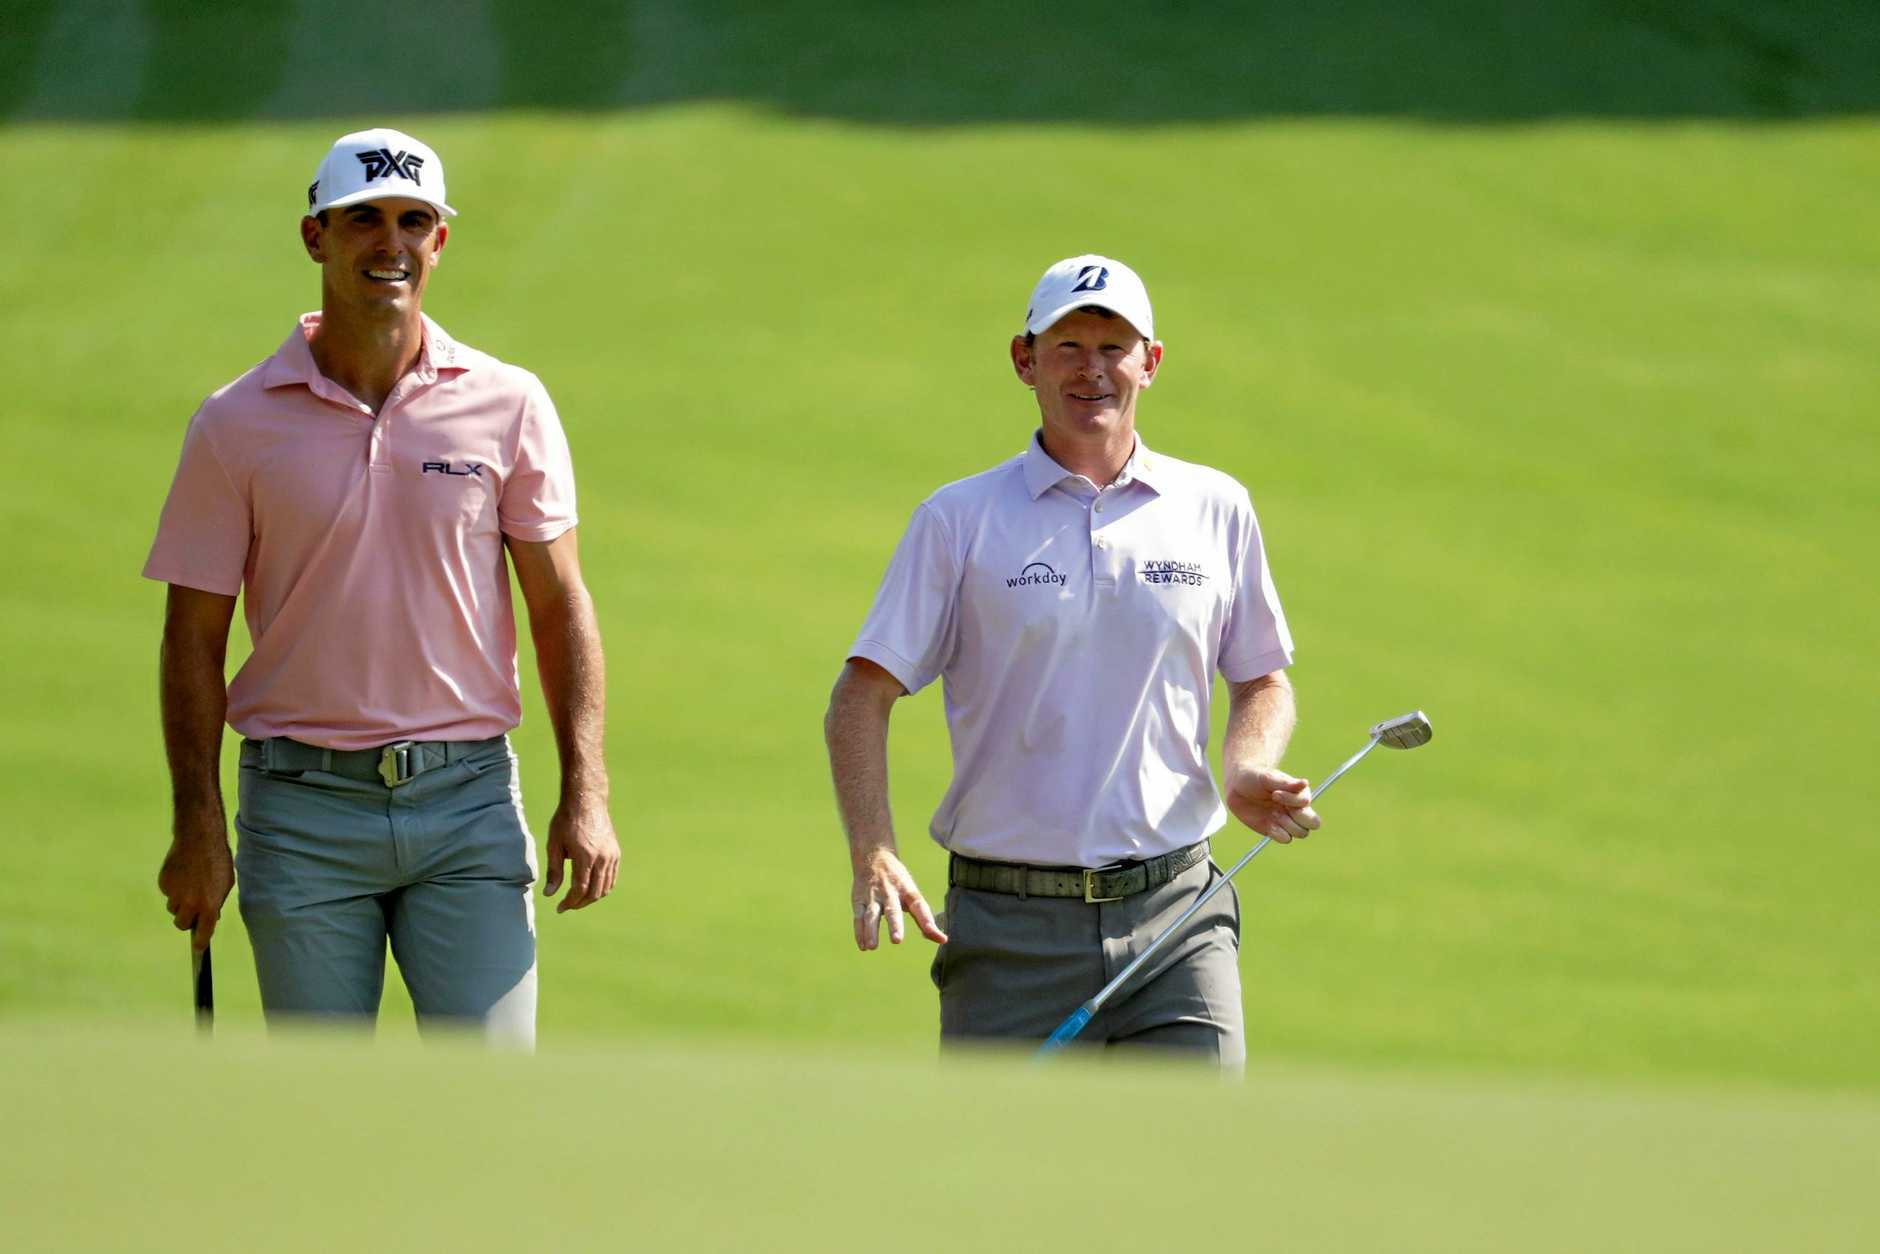 GREENSBORO, NC - AUGUST 16:  Brandt Snedeker(R) and Billy Horschel walk the first fairway during the first round of the Wyndham Championship at Sedgefield Country Club on August 16, 2018 in Greensboro, North Carolina.  (Photo by Streeter Lecka/Getty Images)